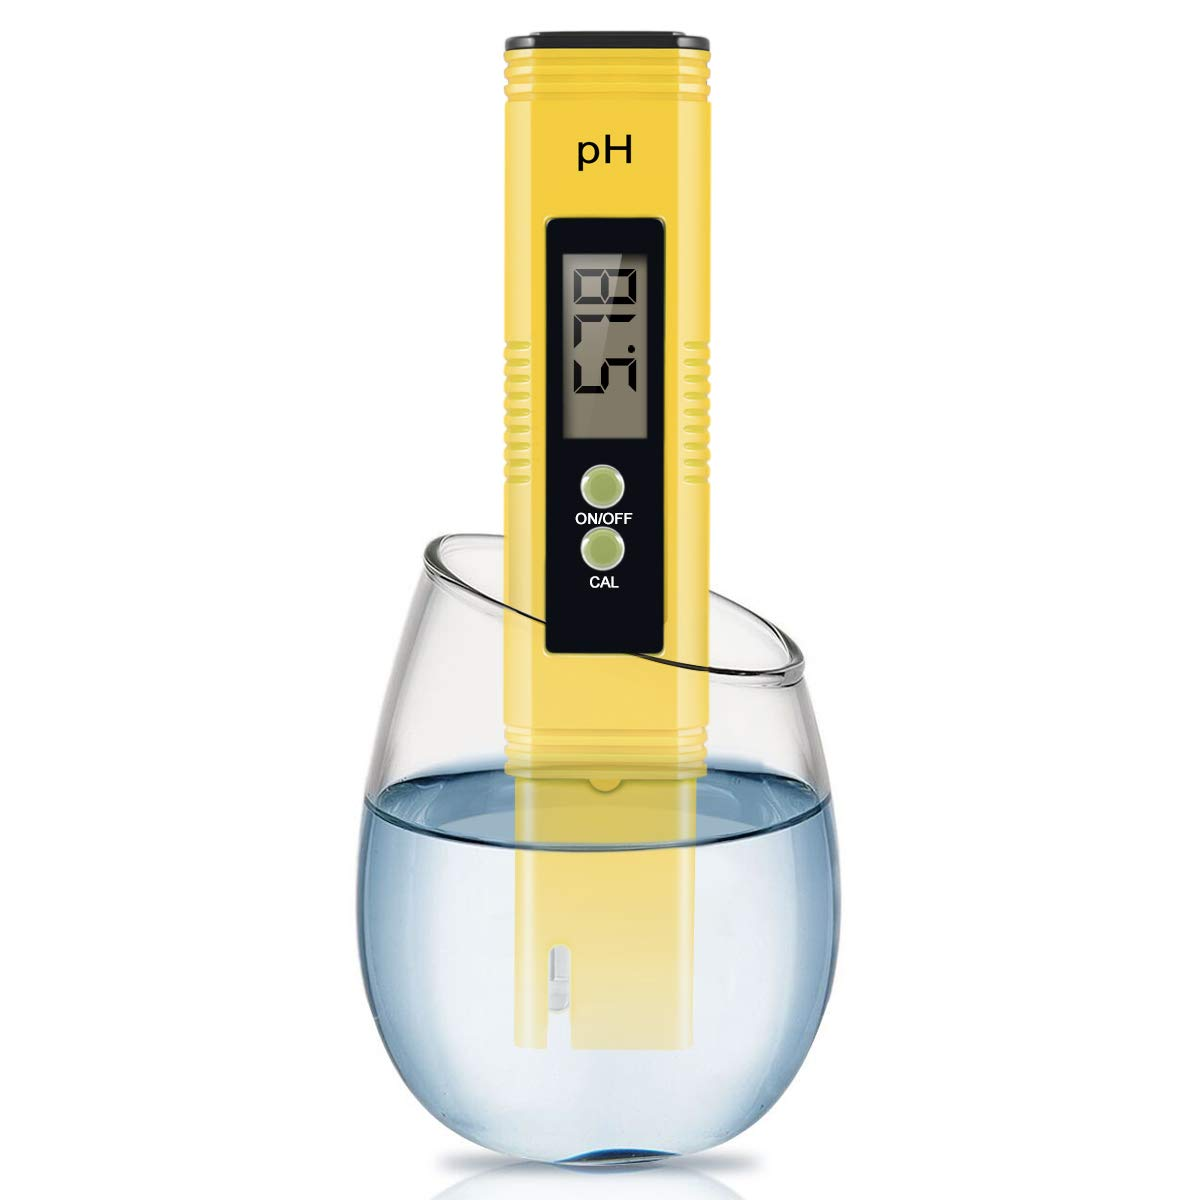 Digital PH Meter, Wellcows PH Meter 0.01 PH High Accuracy Water Quality Tester with 0-14 PH Measurement Range for Household Drinking, Pool and Aquarium Water PH Tester Design with ATC (2019-Yellow)